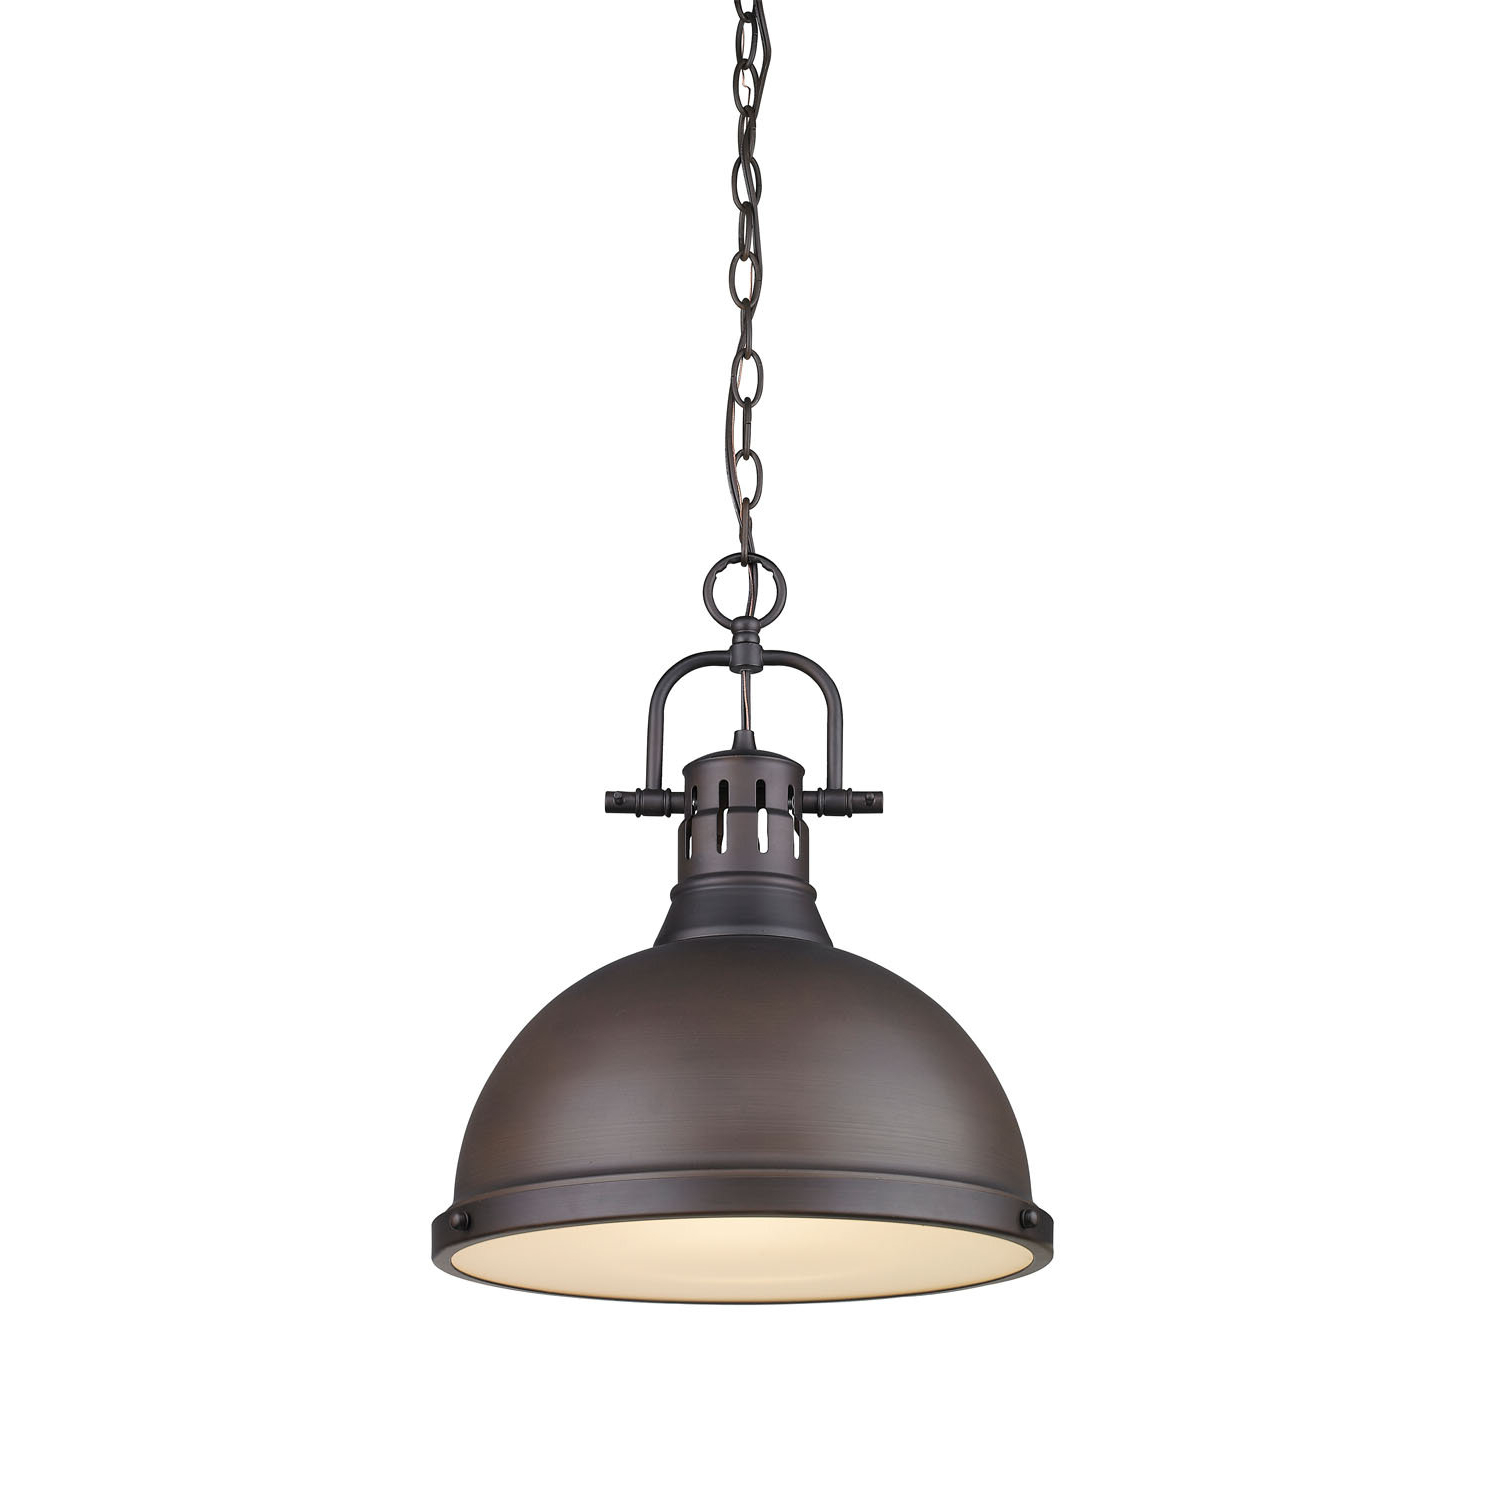 Bodalla 1 Light Single Dome Pendants With Best And Newest Bodalla 1 Light Single Dome Pendant (View 2 of 20)